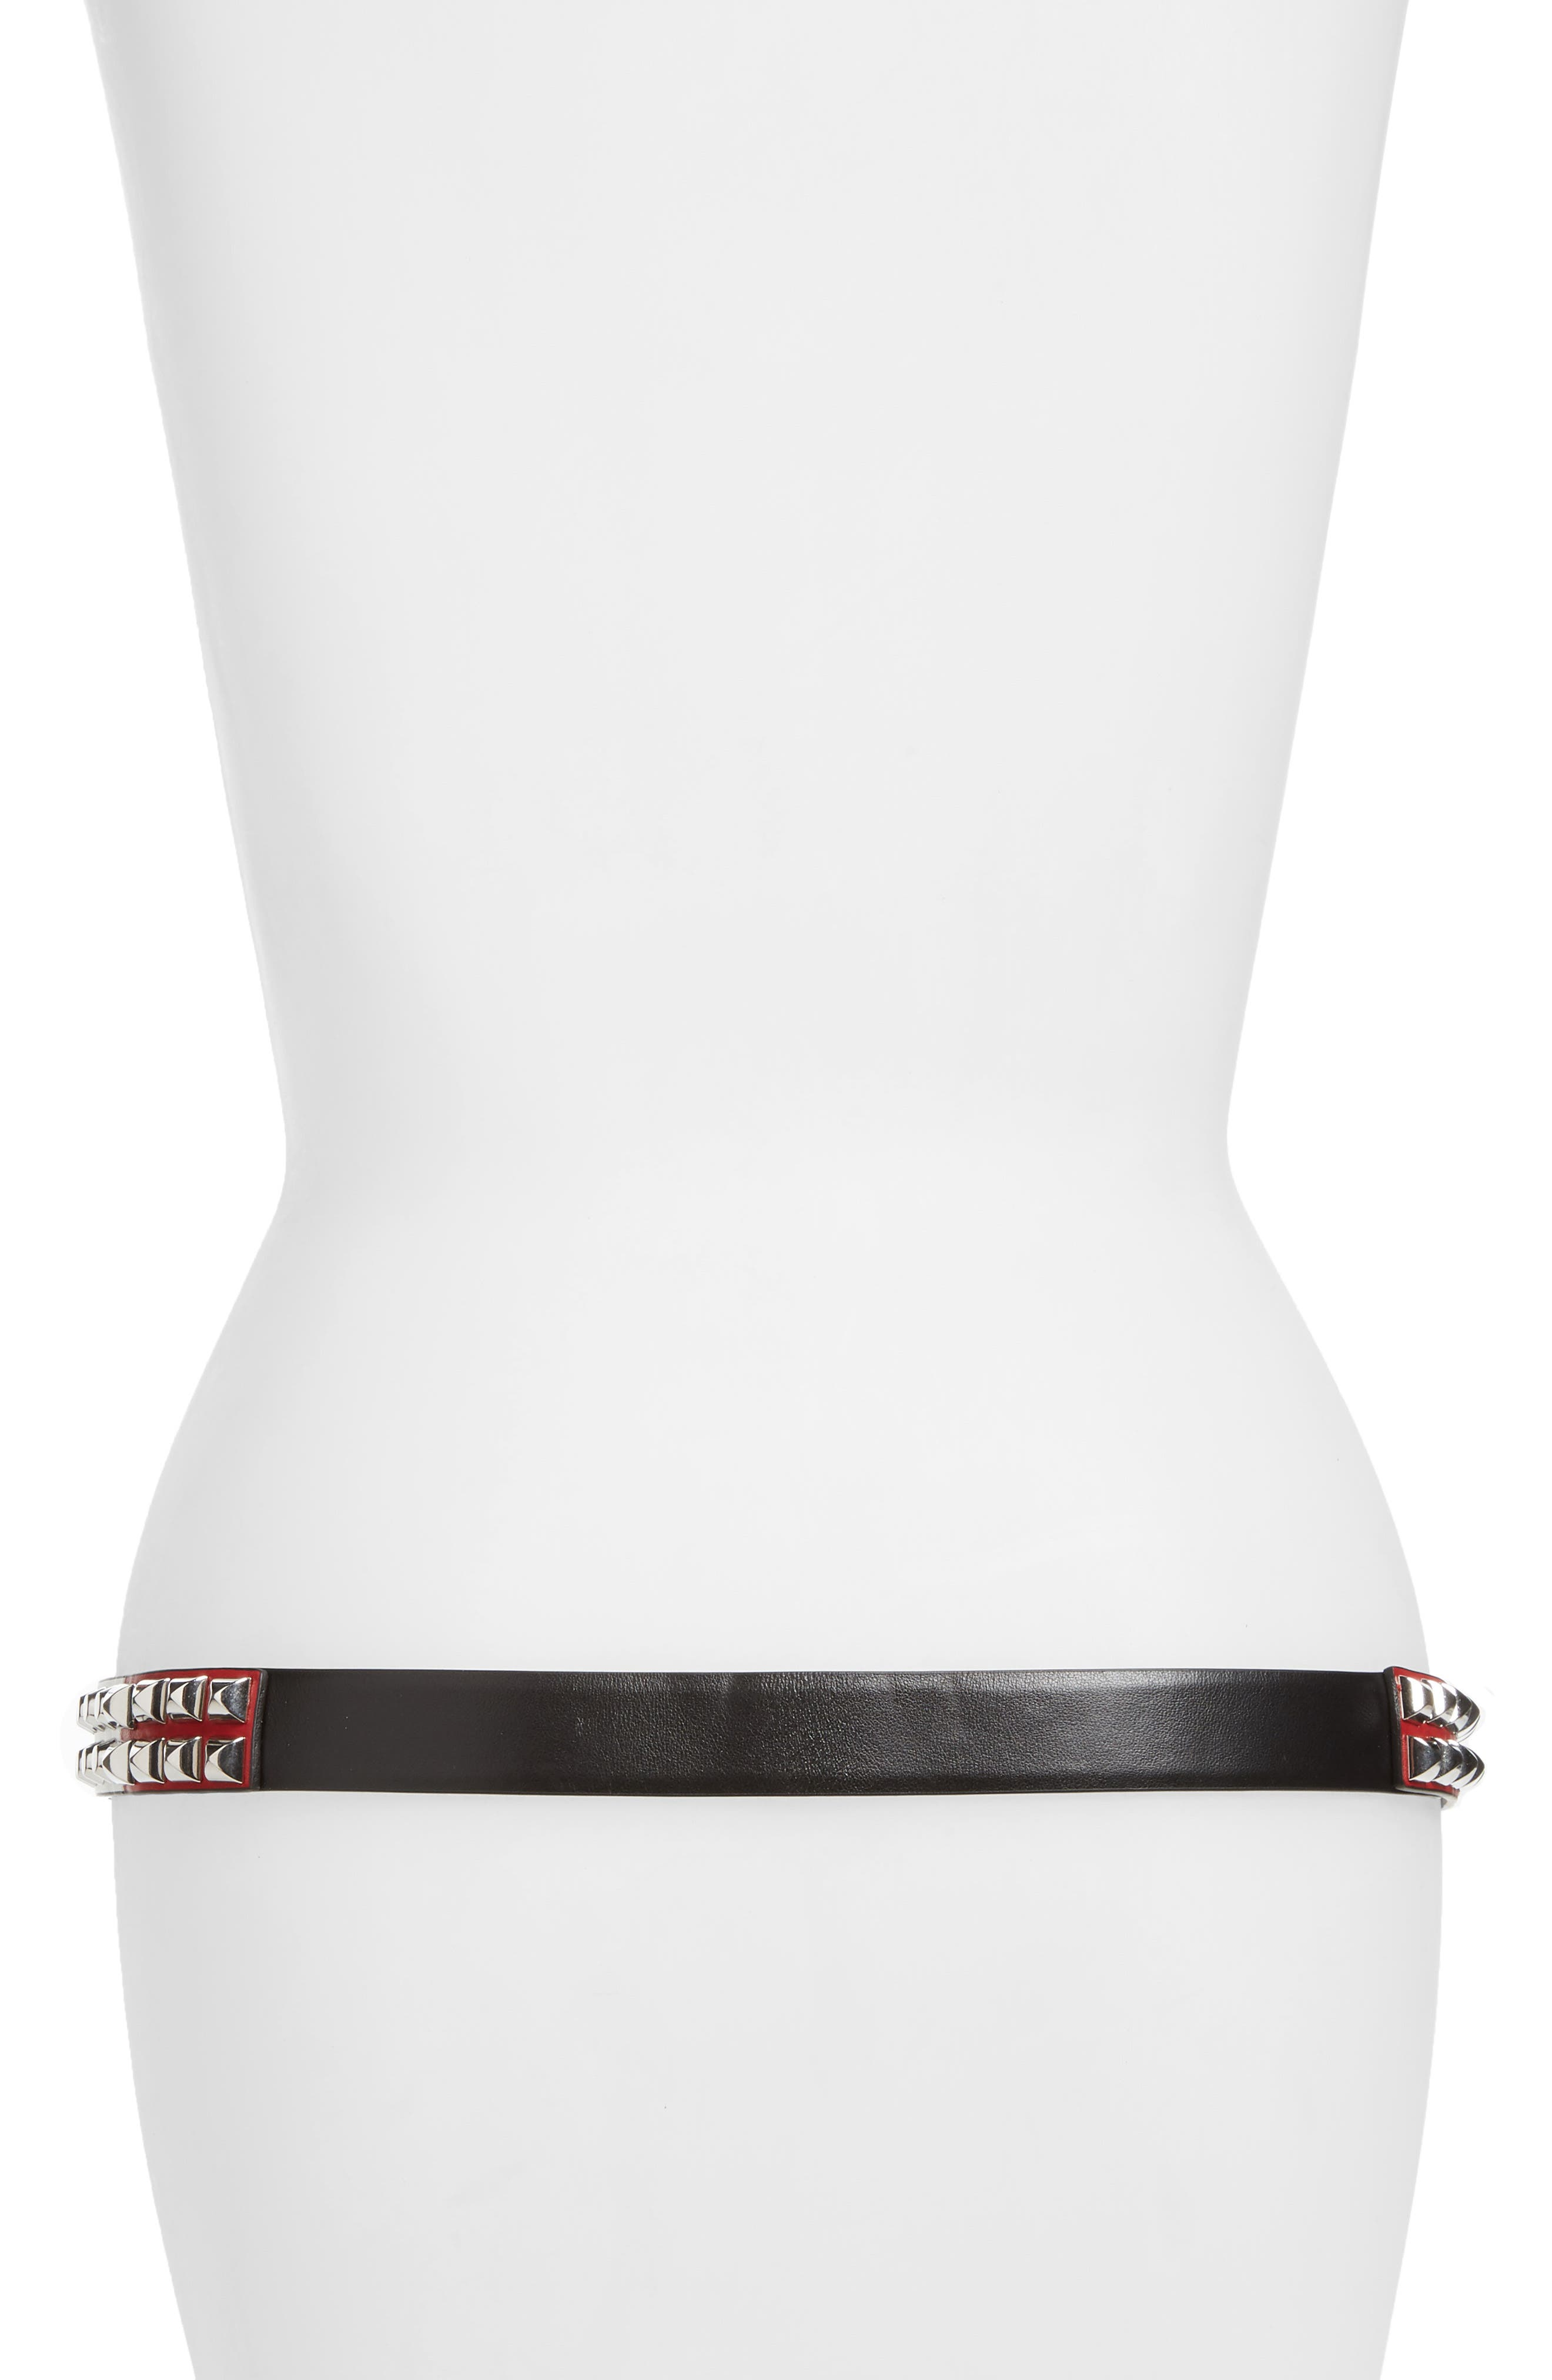 Studded Tricolor Leather Belt,                             Alternate thumbnail 2, color,                             NERO/ BIANCO/ FUOCO